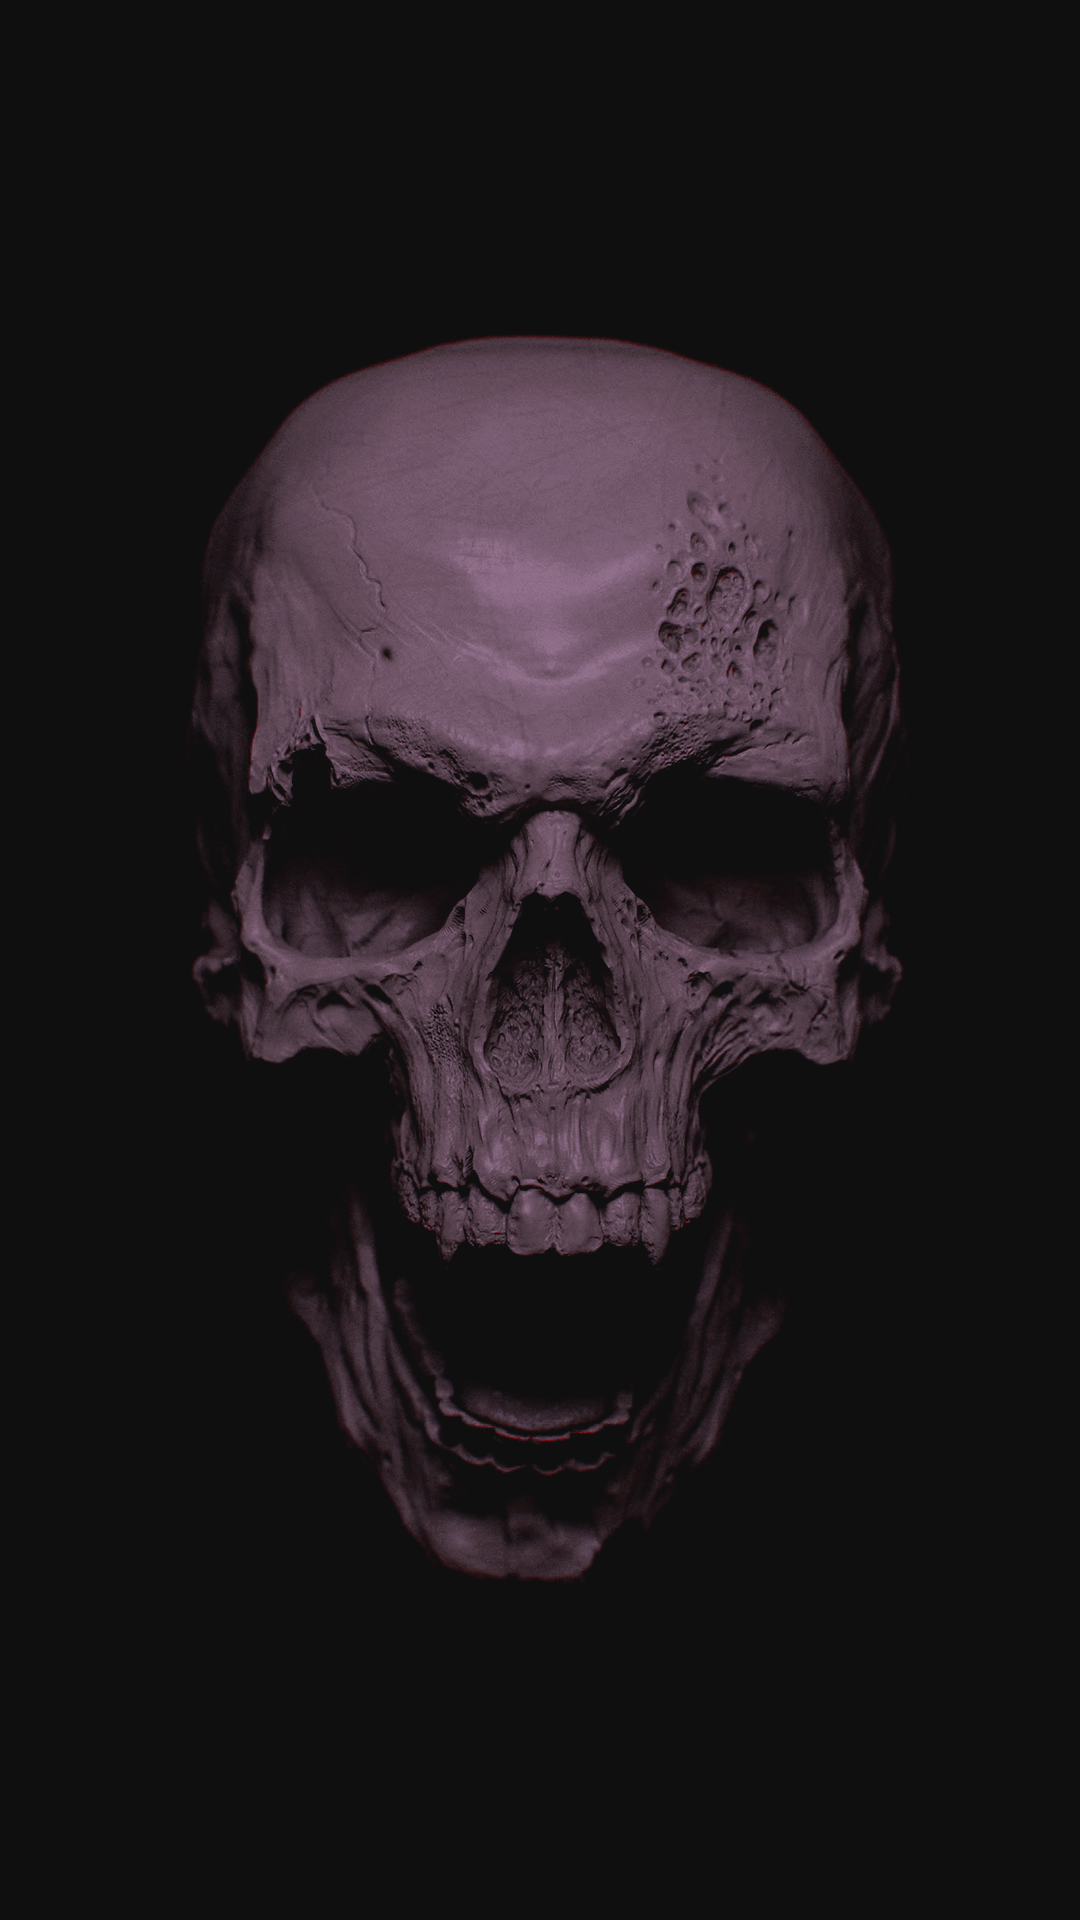 Apple Skull Iphone Wallpapers Top Free Apple Skull Iphone Backgrounds Wallpaperaccess